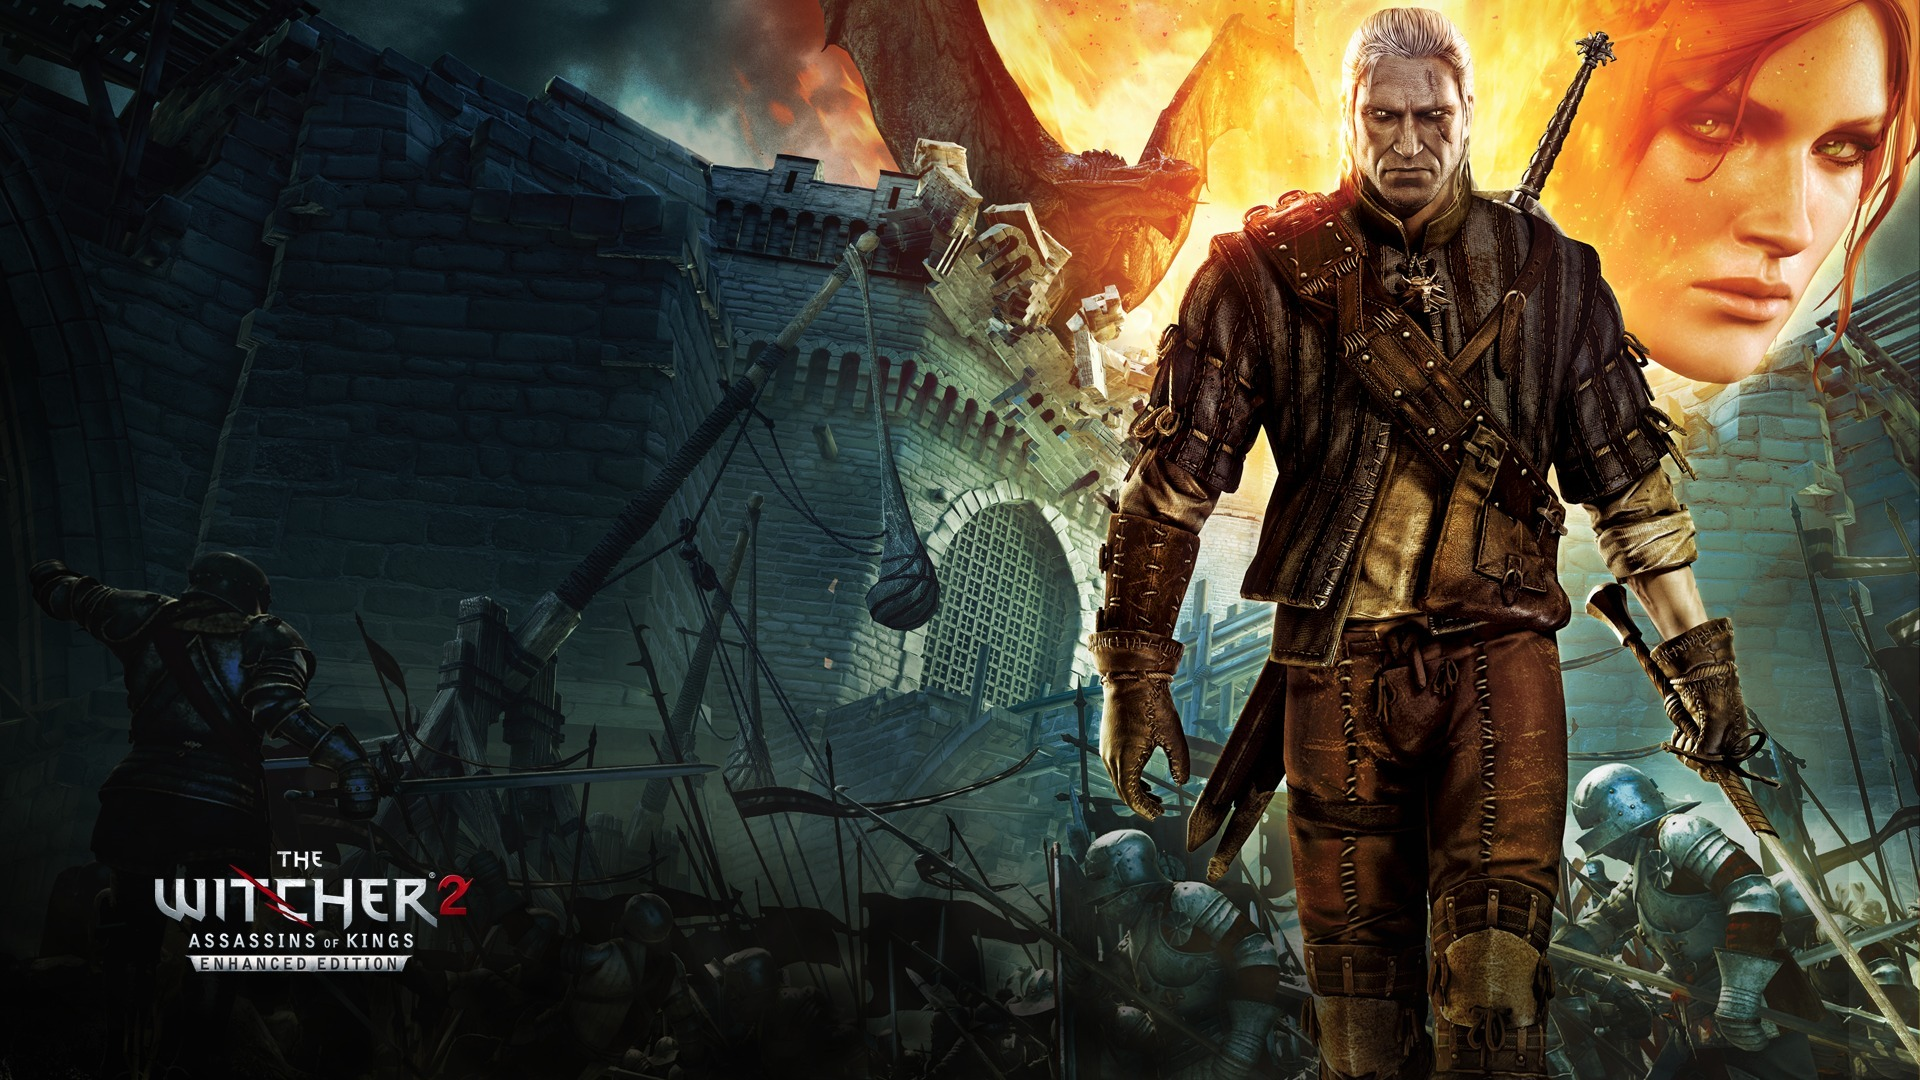 Desktop Wallpapers The Witcher The Witcher 2 Assassins of 1920x1080 1920x1080